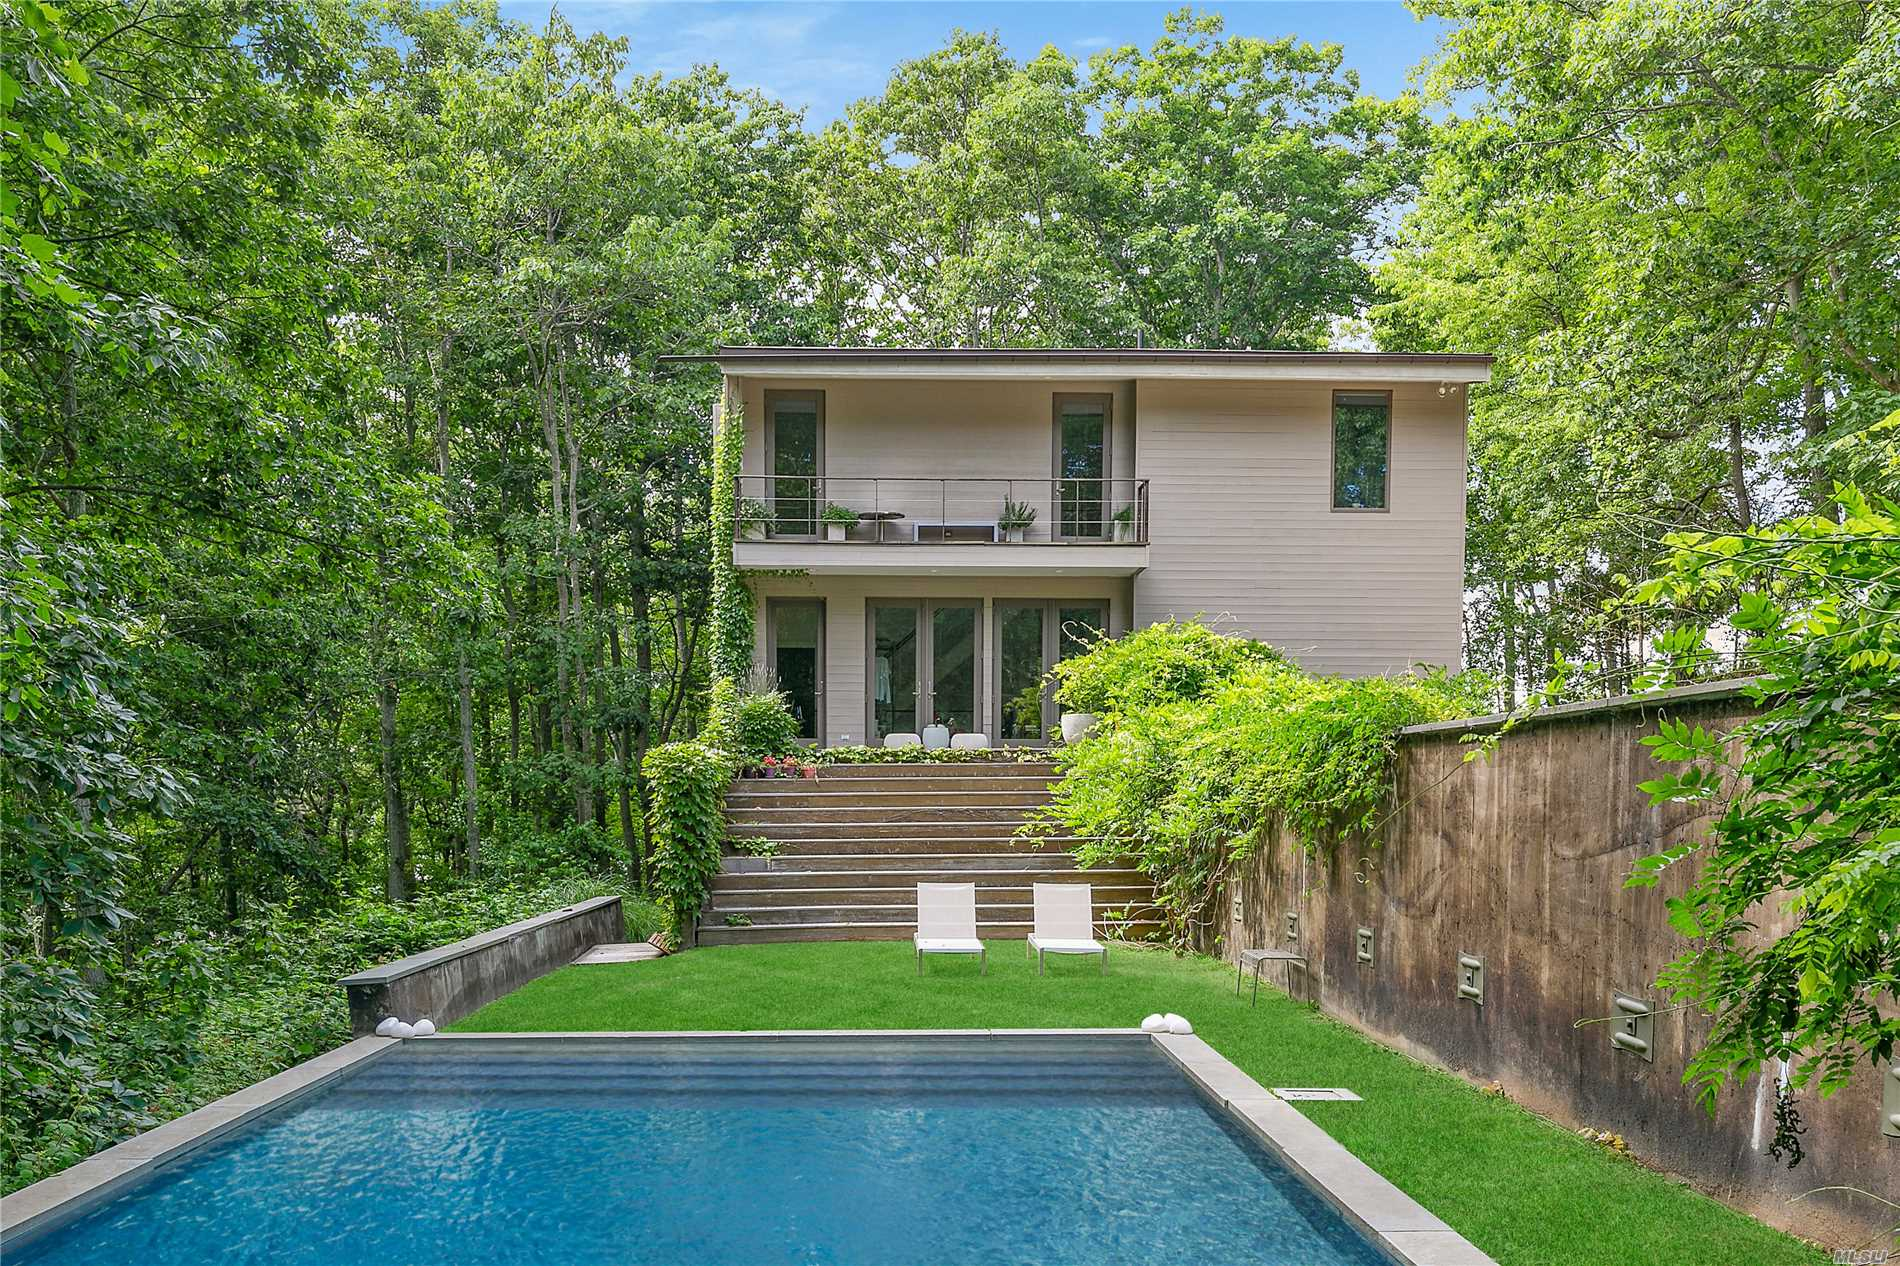 Photo of home for sale at 6 Sunnyside Ave, Shelter Island H NY